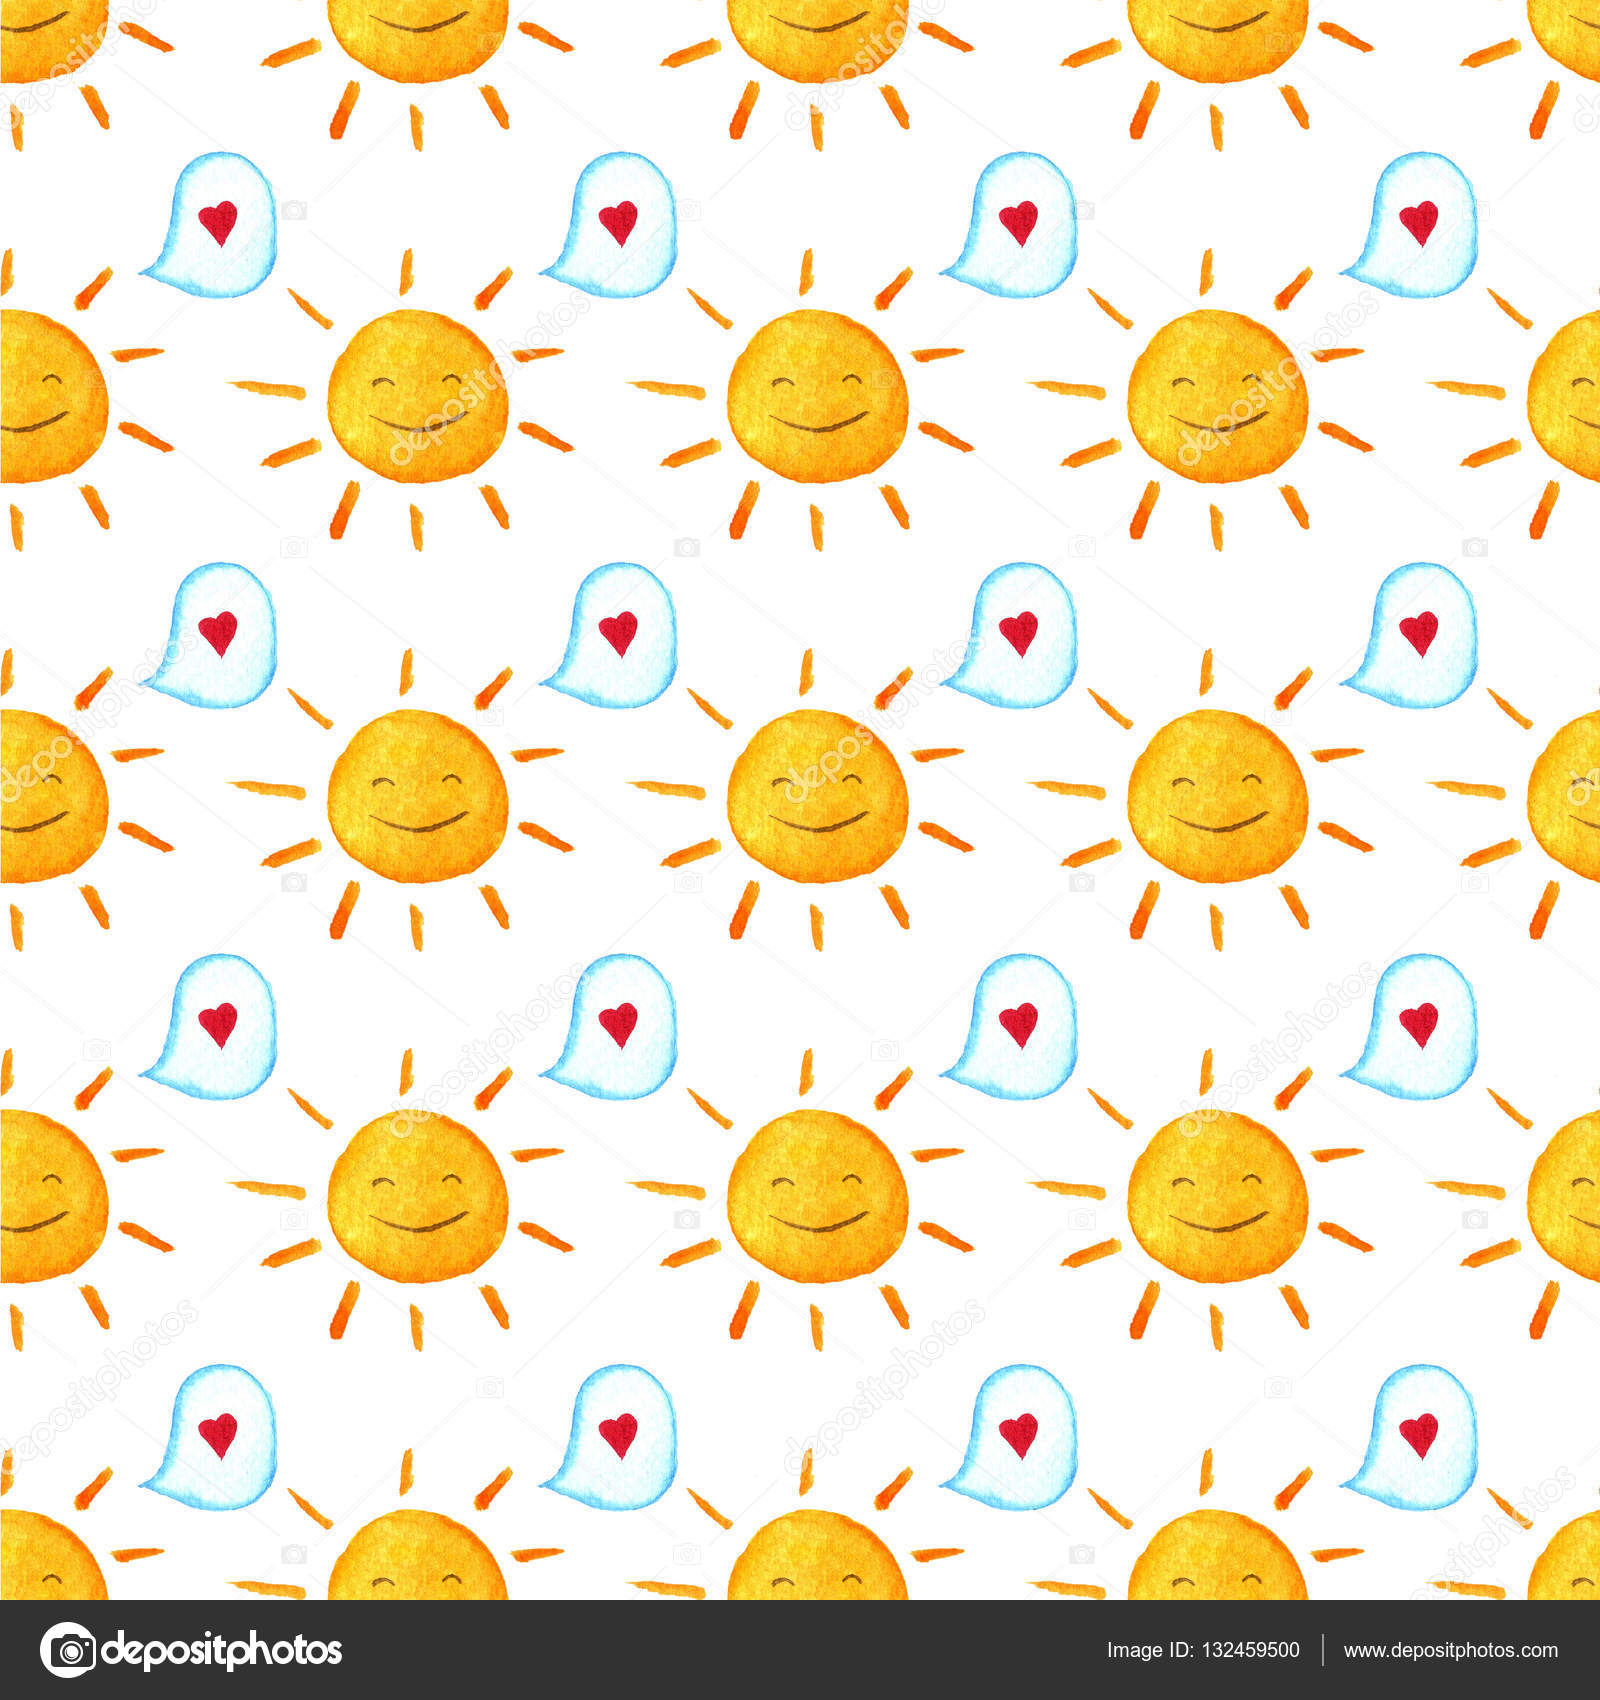 Seamless Baby Pattern Hand Painted Illustration Wallpaper With Hearts Bubbles And Suns Watercolor